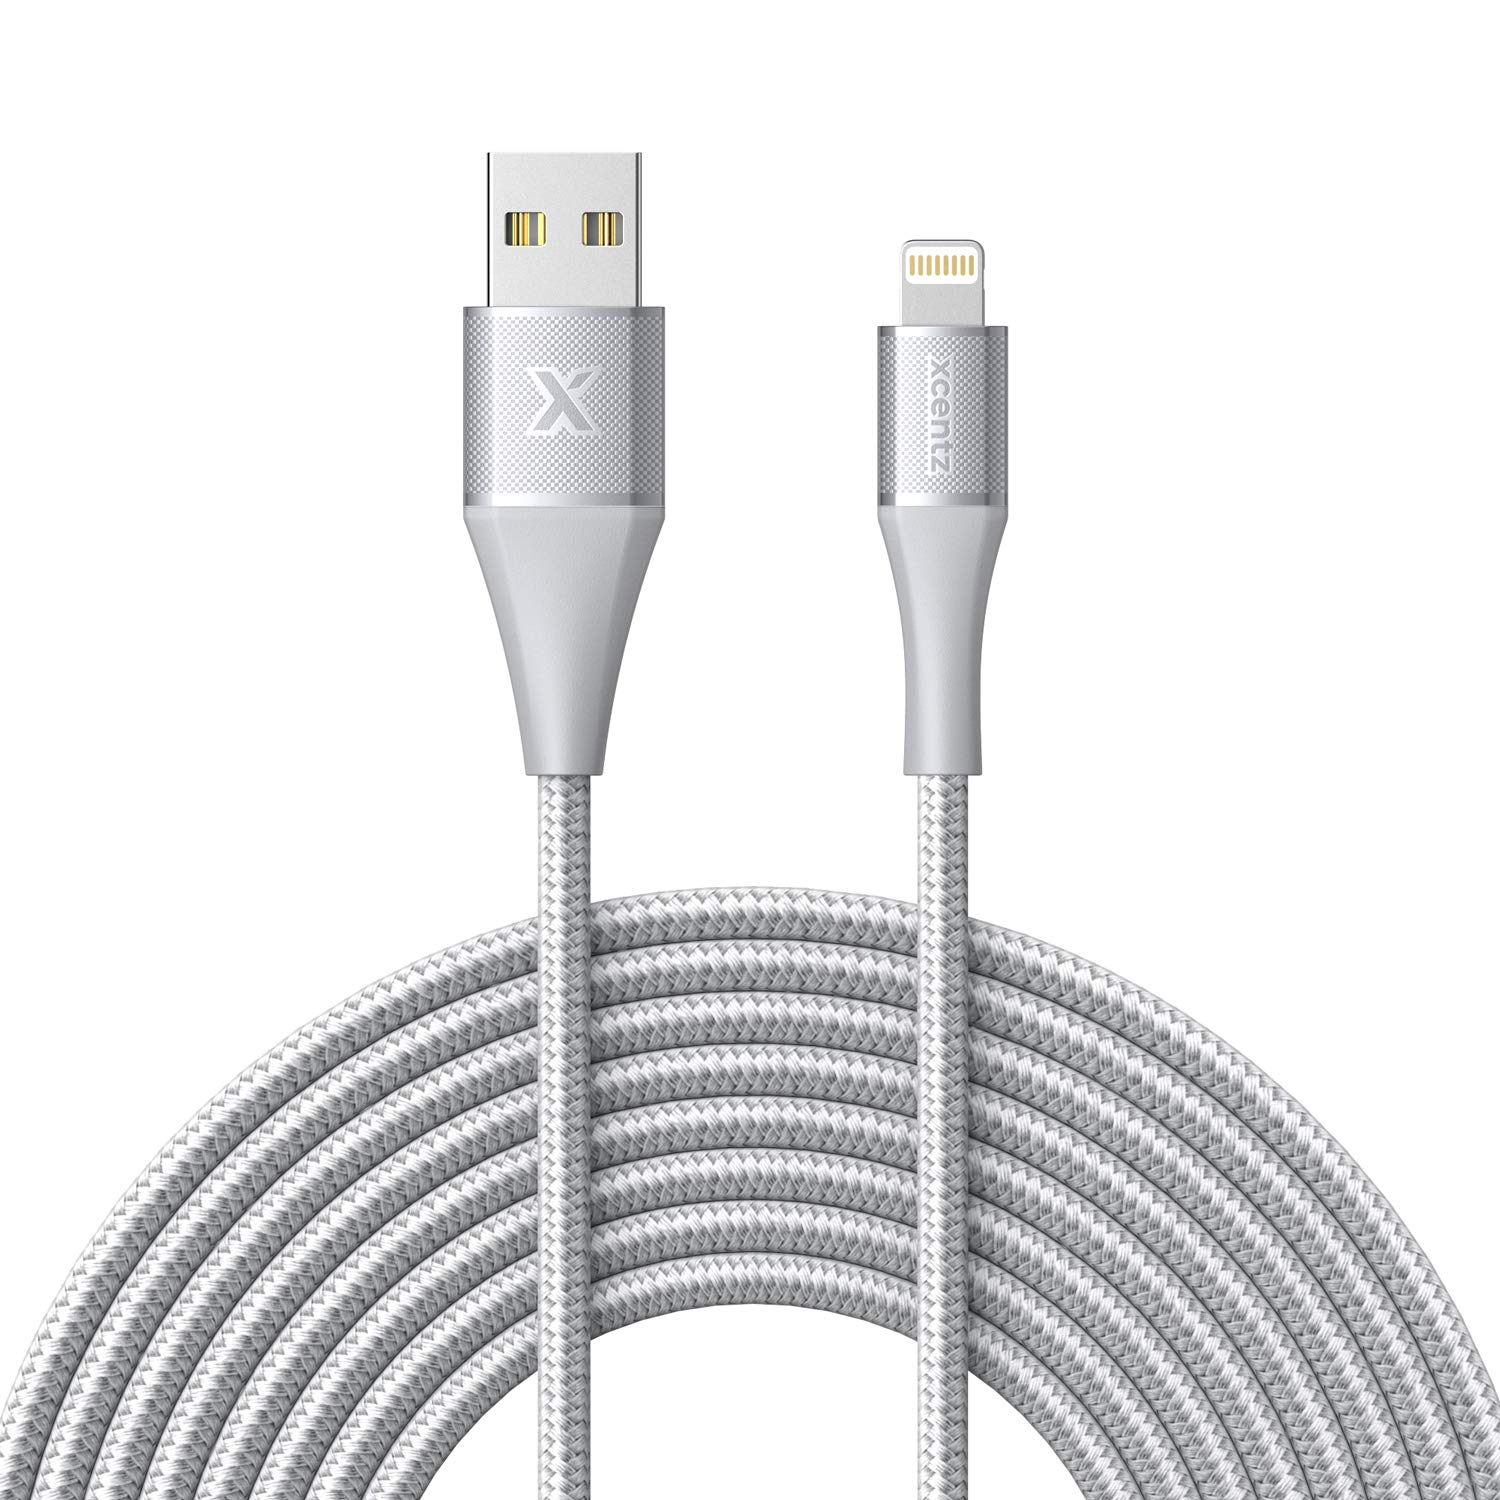 Xcentz iPhone Charger 10ft, Apple MFi Certified Lightning Cable, Braided Nylon High-Speed iPhone Cable with Premium Metal Connector for iPhone X/XS/XR/XS Max/8/7/6/5S/SE, iPad Mini/Air, Silver by XCENTZ